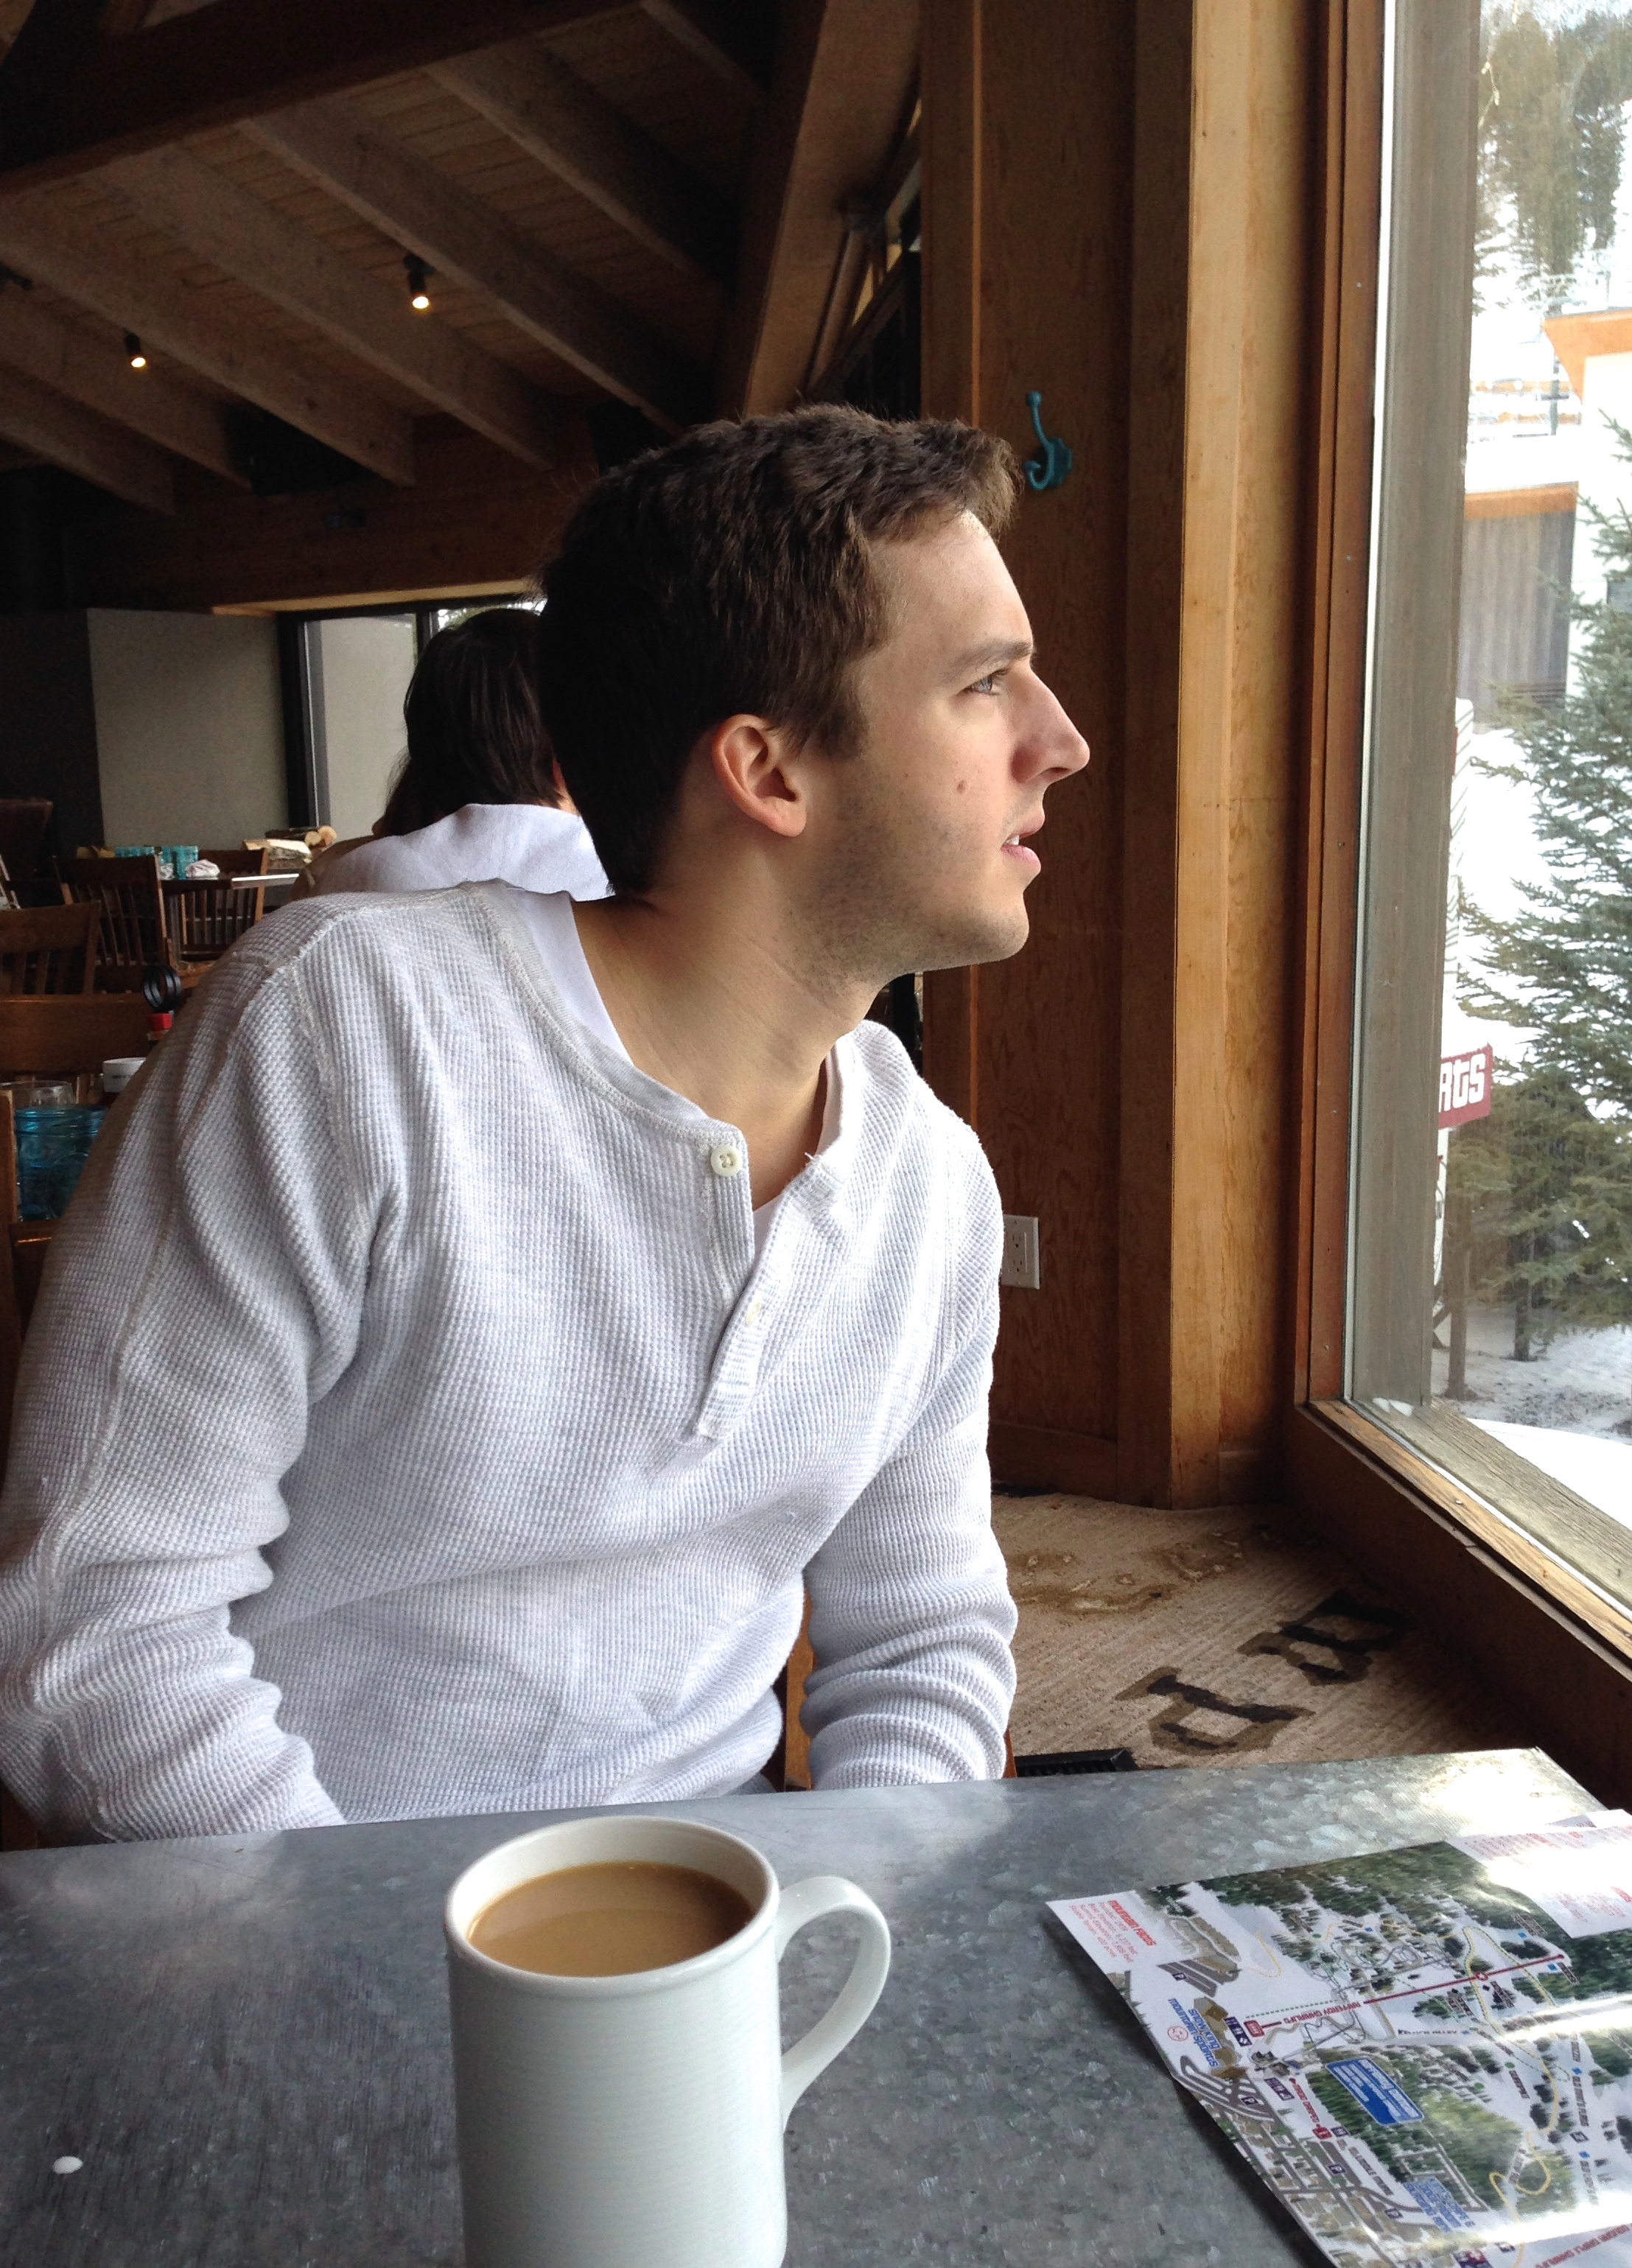 This was Micah both mornings: staring at the slopes, ready for breakfast to be over so he can go ski.